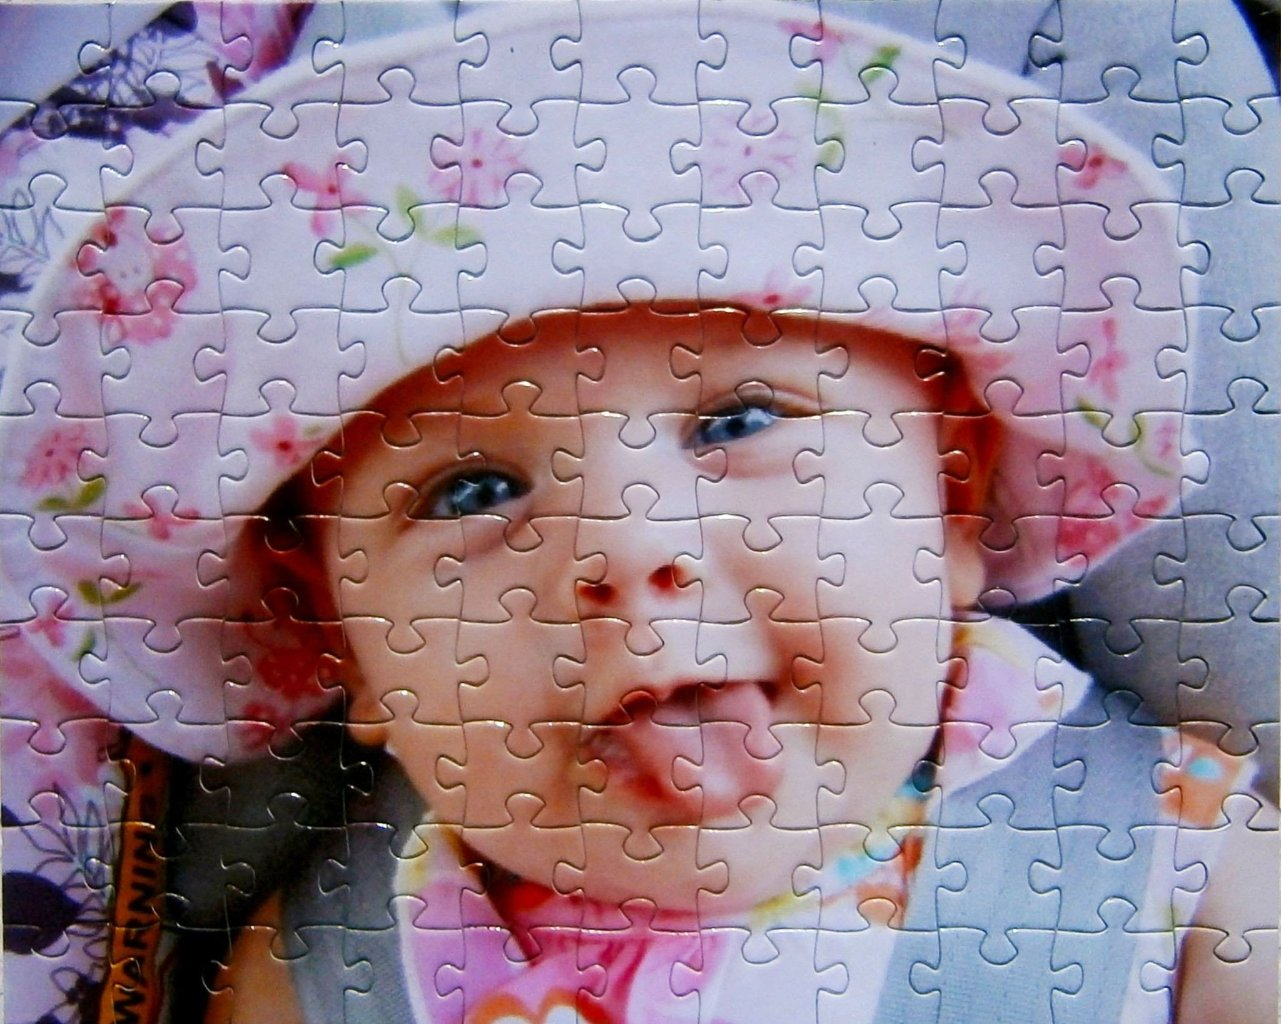 Custom Puzzle - Cheap Custom Puzzle Gift With 30 Pieces!  8 X 10 In Puzzle